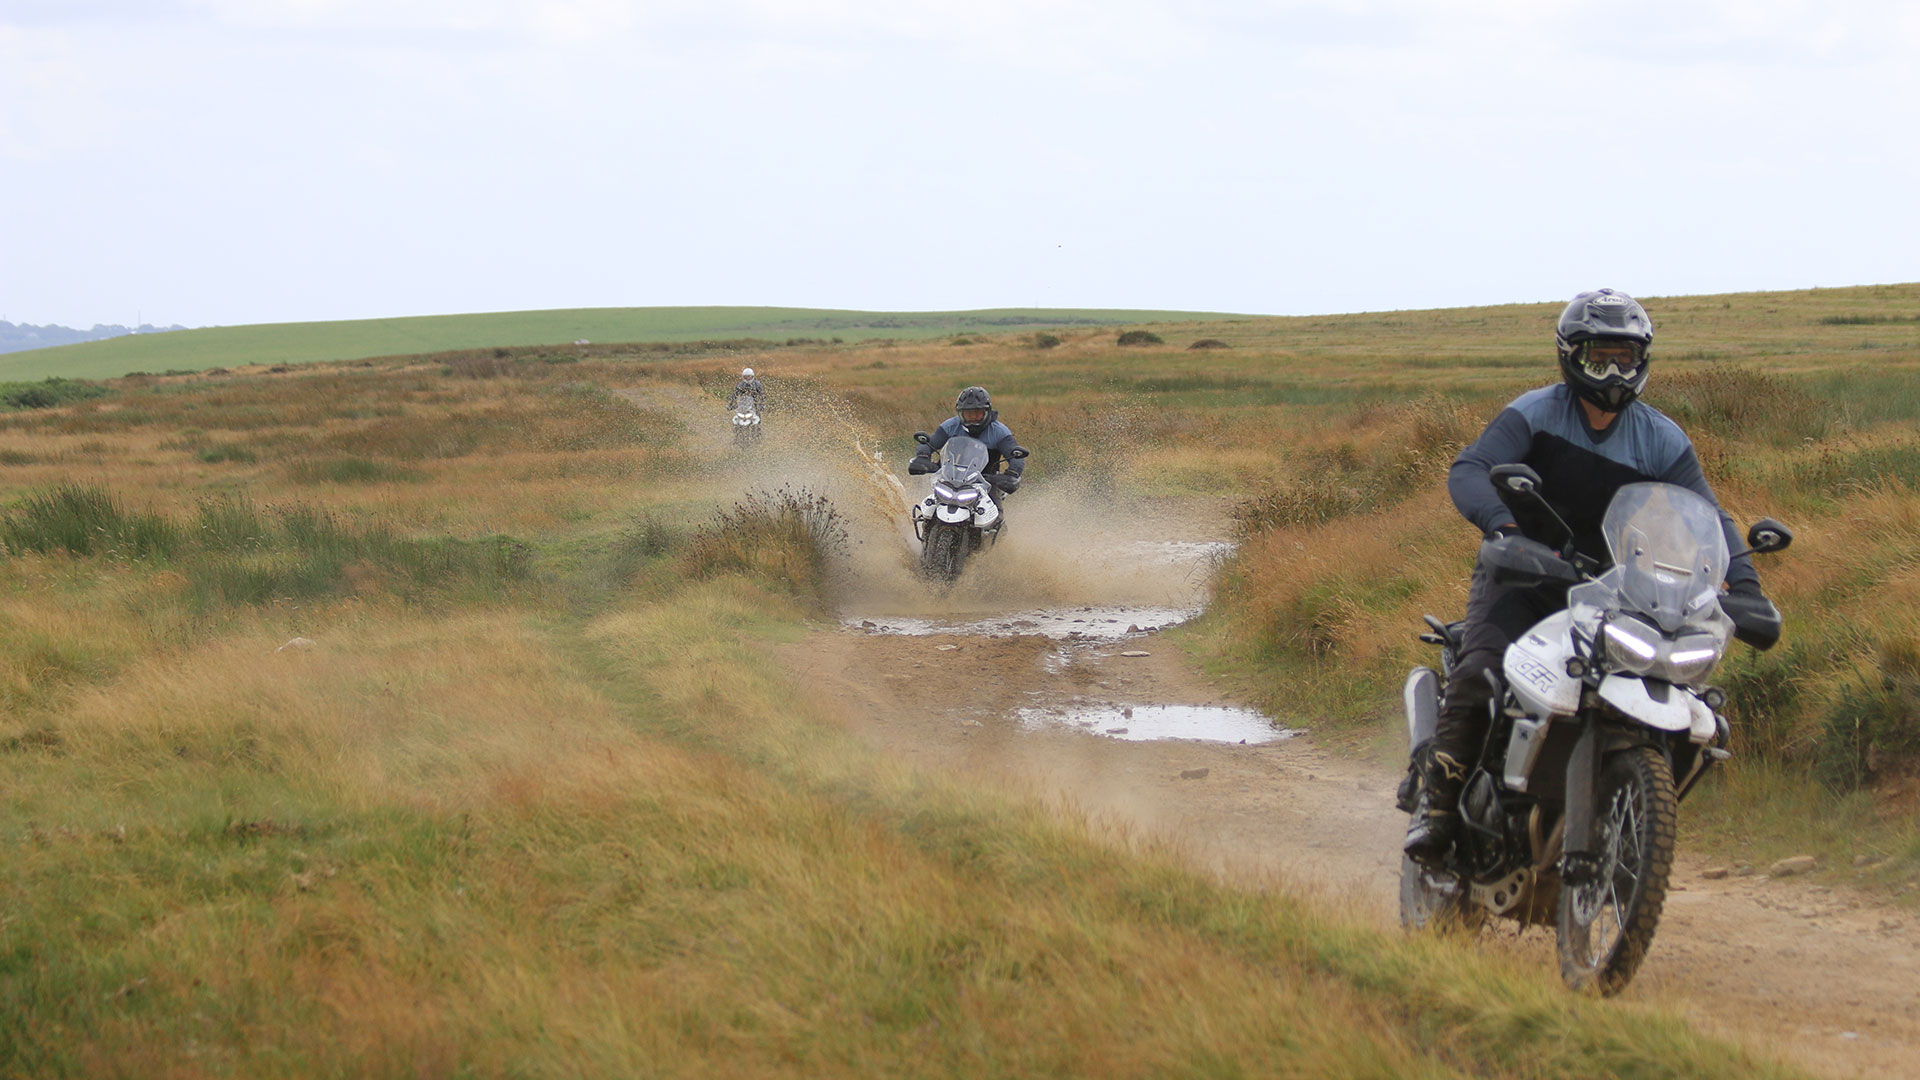 Triumph Tiger experience day with riders going through varied terrains